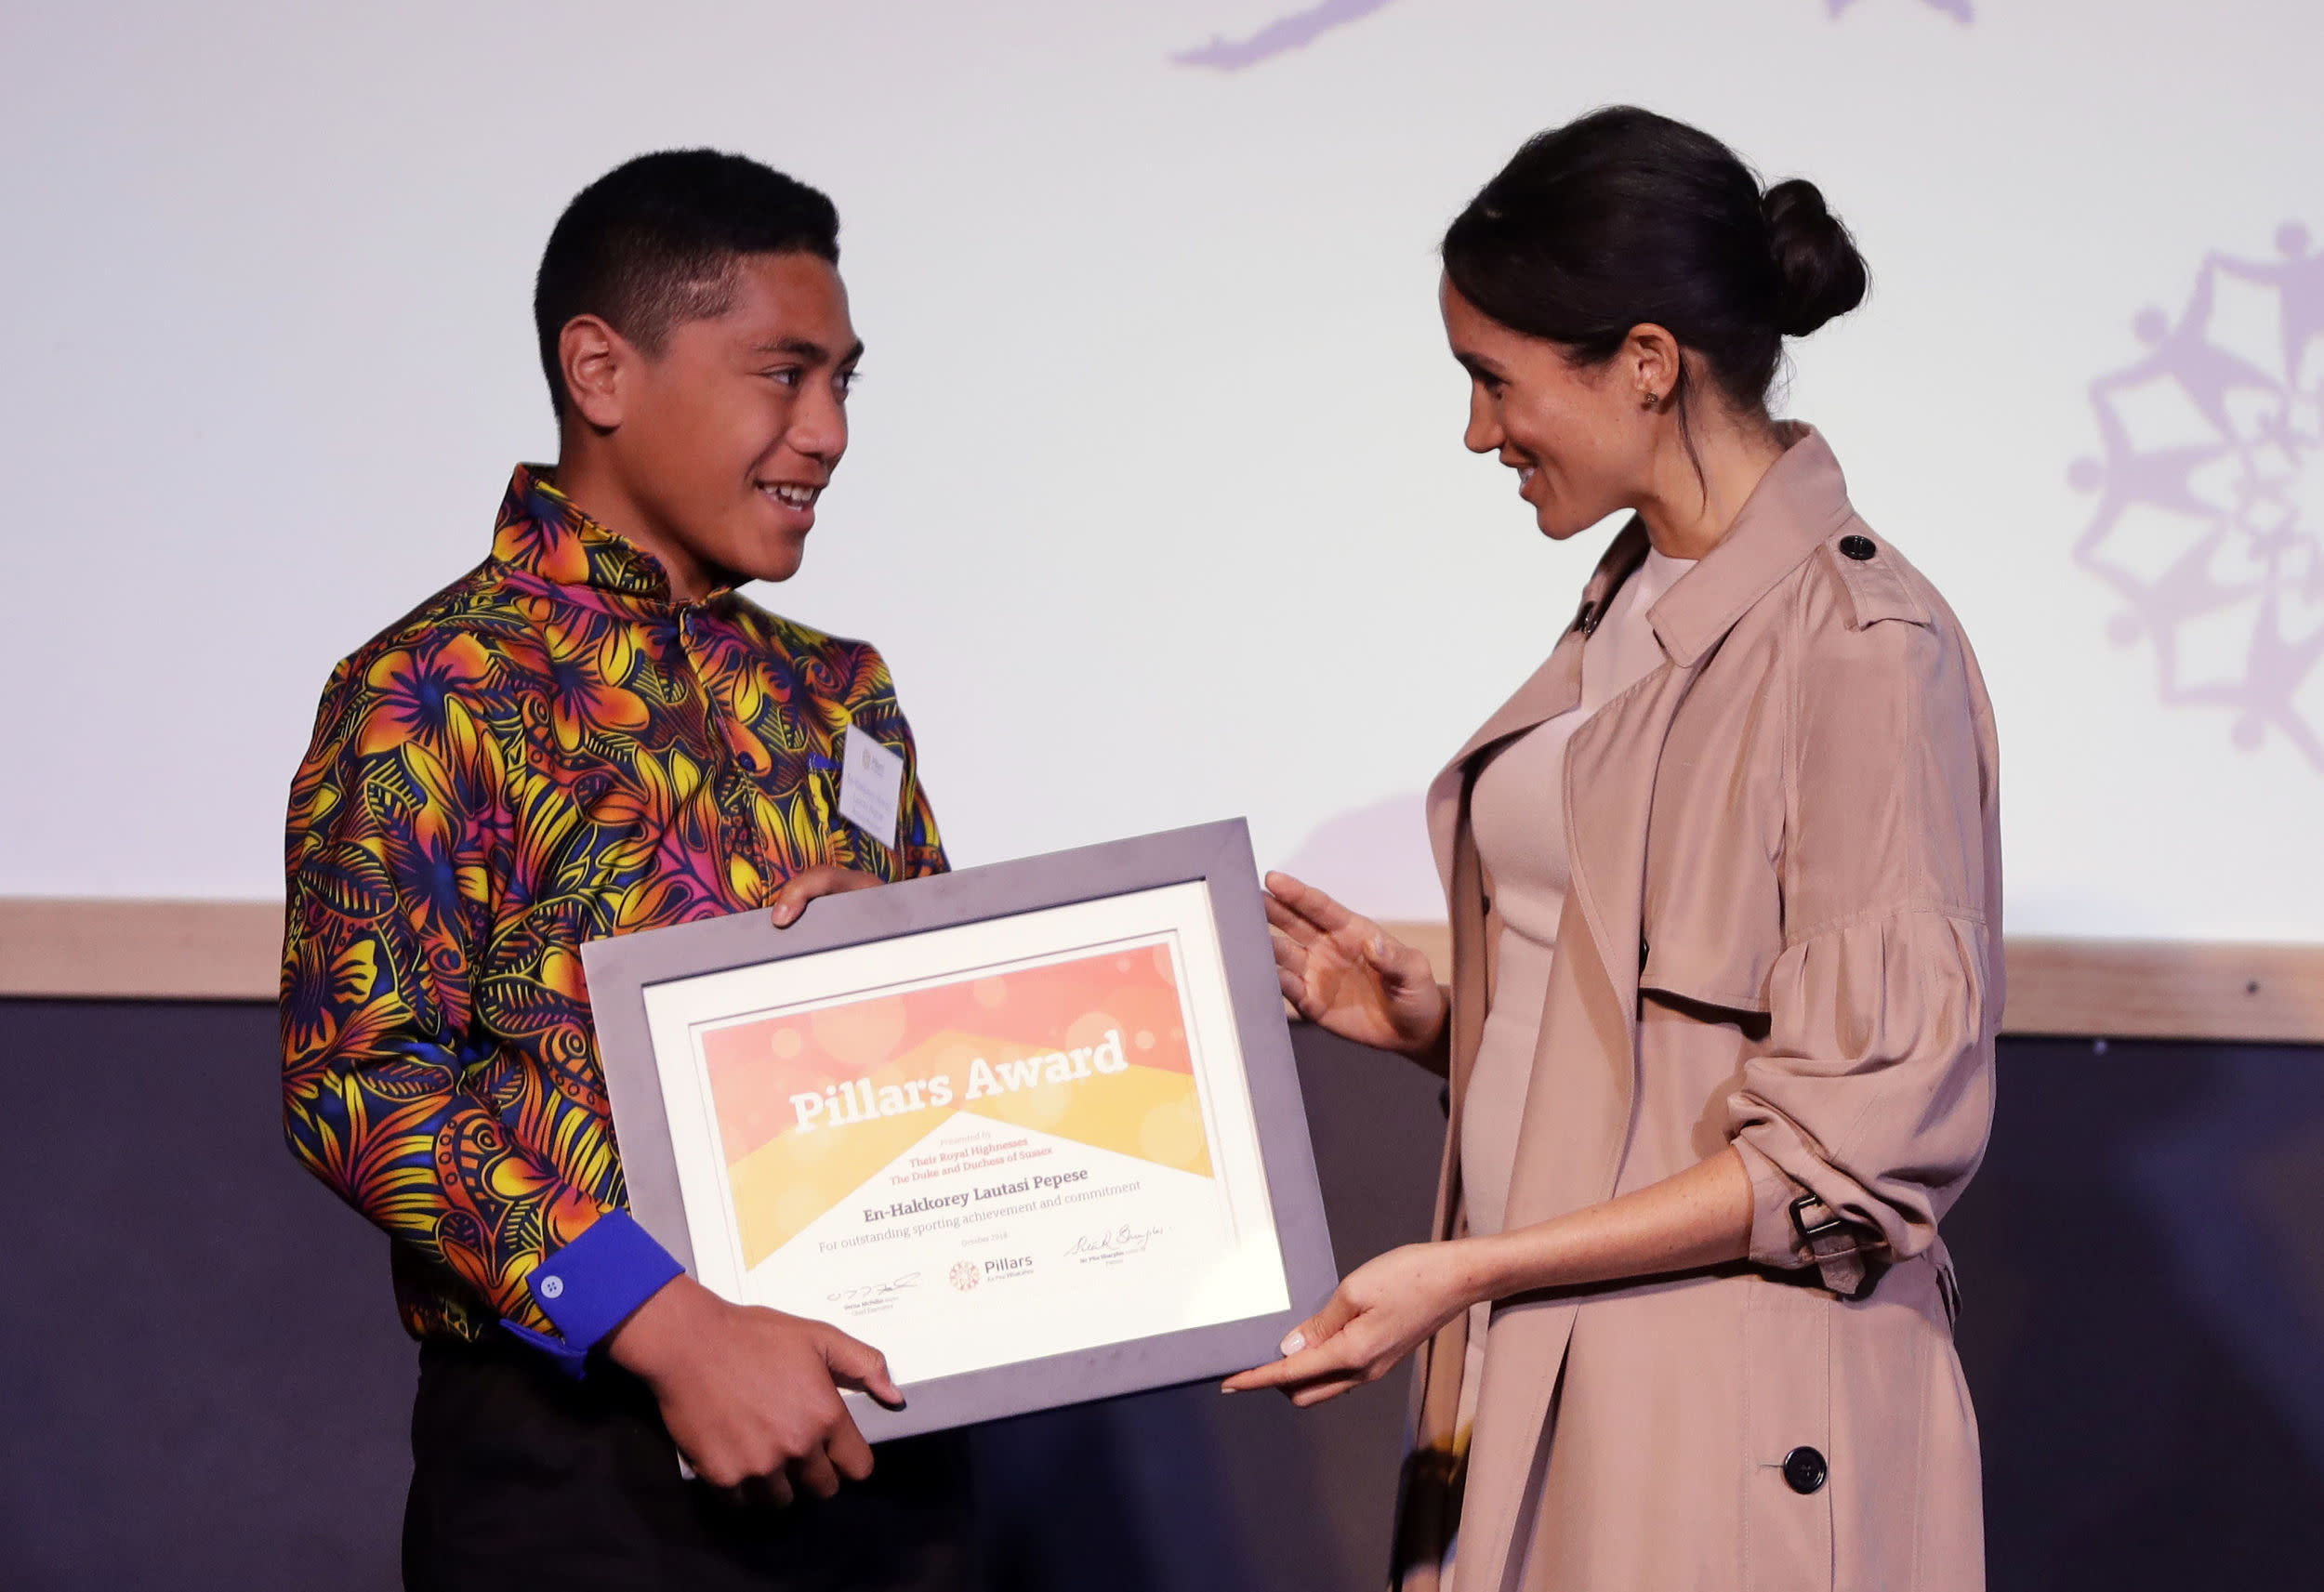 The Duchess of Sussex presents an award to En-Hakkorey Lautasi Pepese during a visit to Pillars, in Auckland, New Zealand, which is a charity operating across New Zealand that supports children who have a parent in prison by providing special mentoring schemes, on day three of the royal couple's tour of New Zealand.